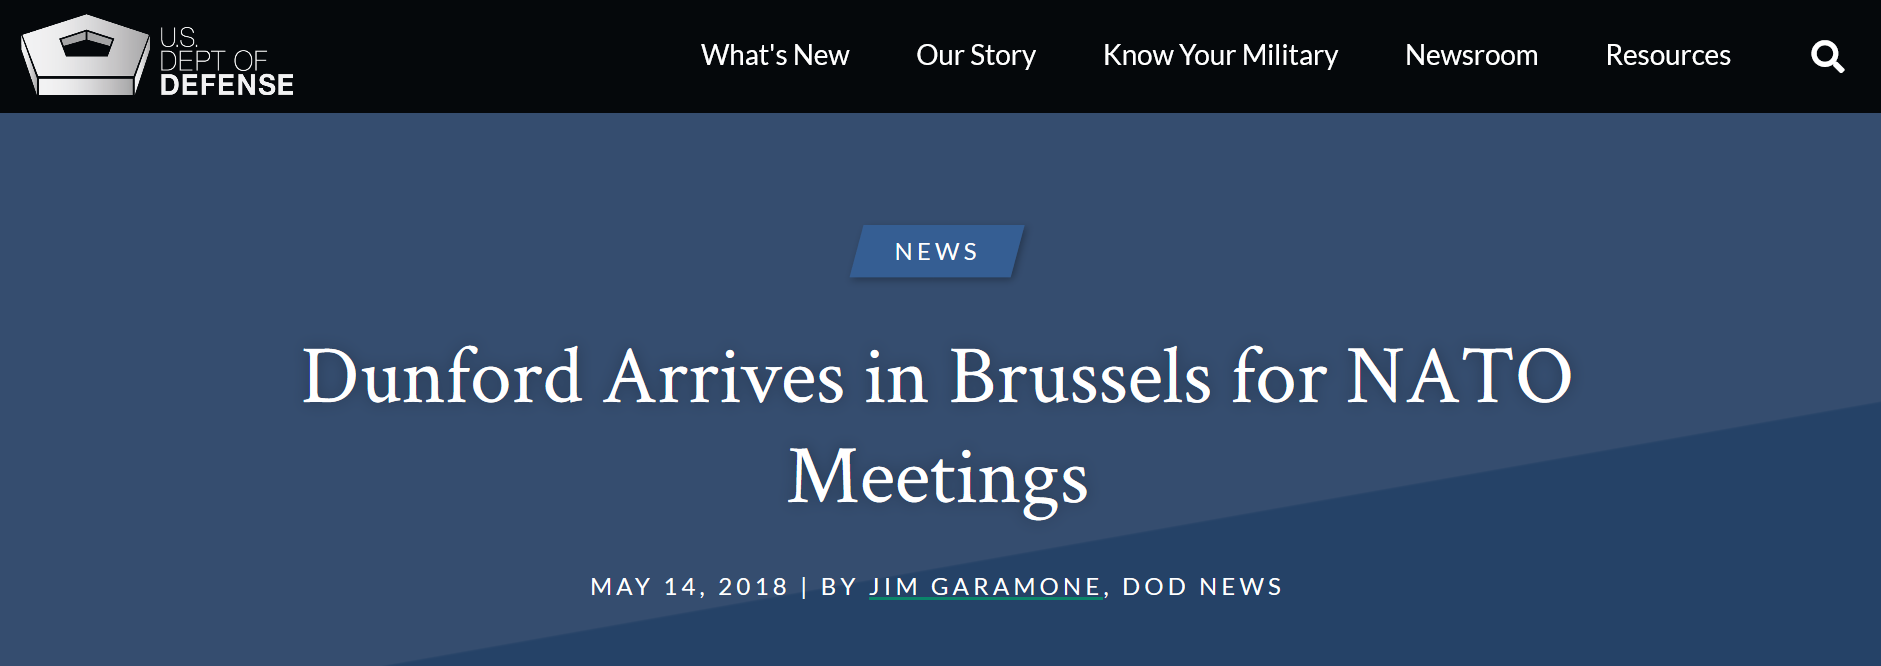 Dunford Brussels May 2018 image DOD.png